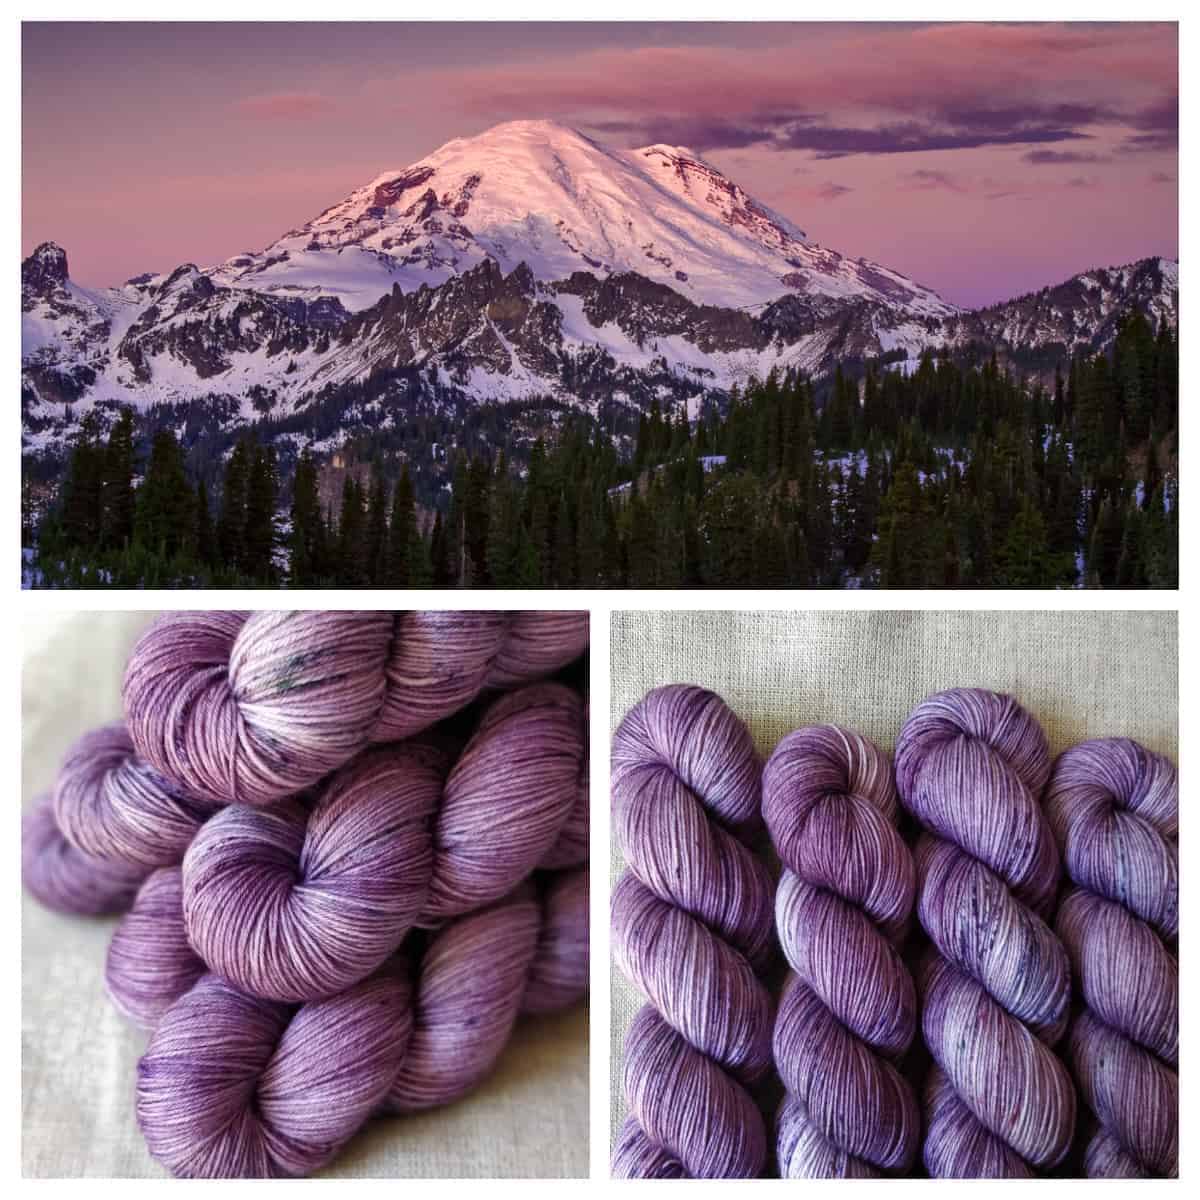 A collage with a snow-covered mountain and purple sky, and pale purple yarn